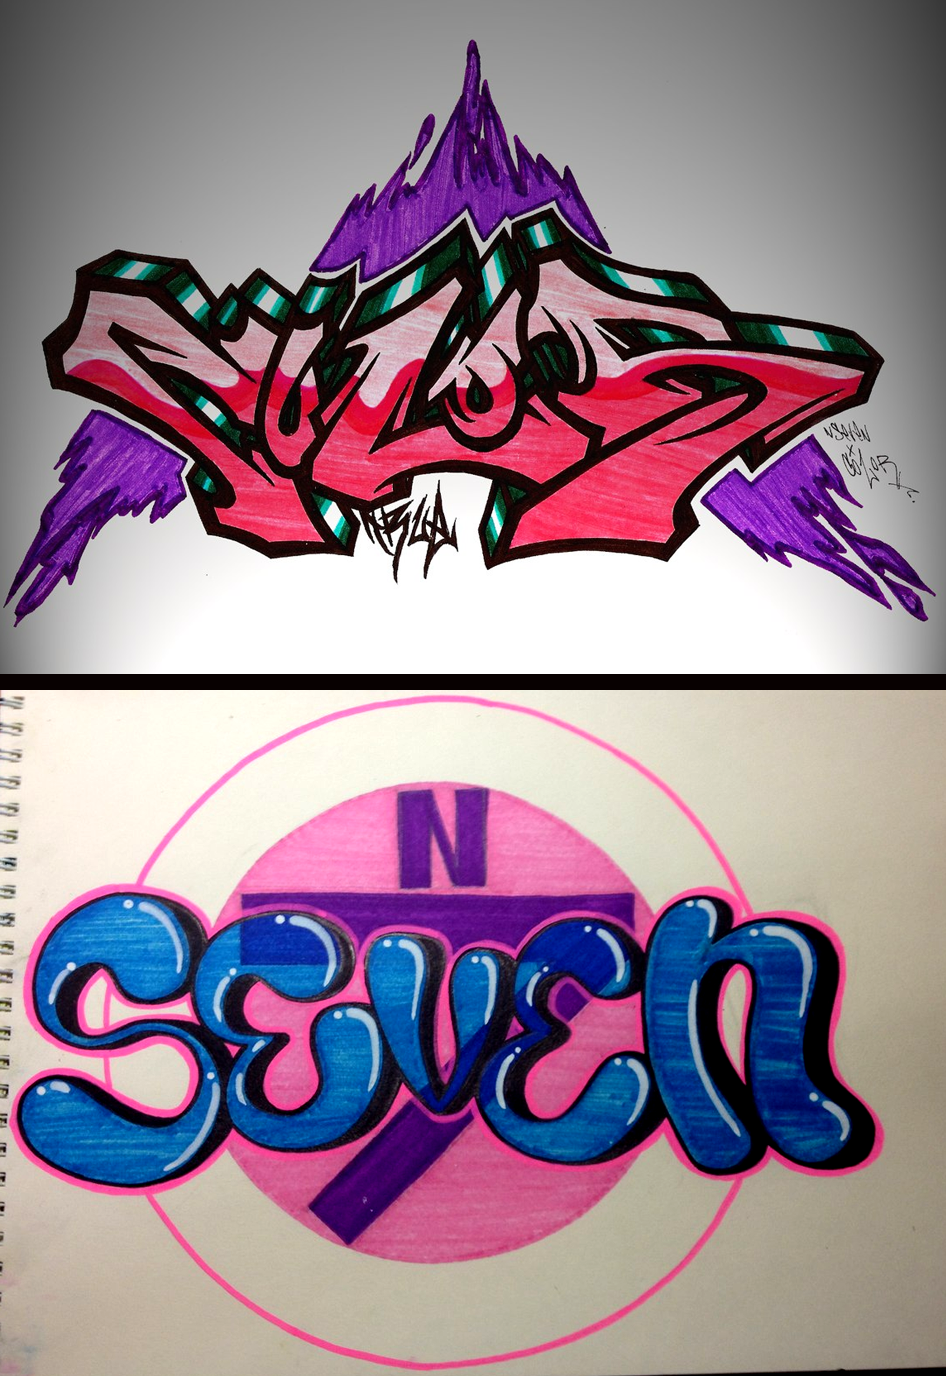 NSEVEN x COLOR